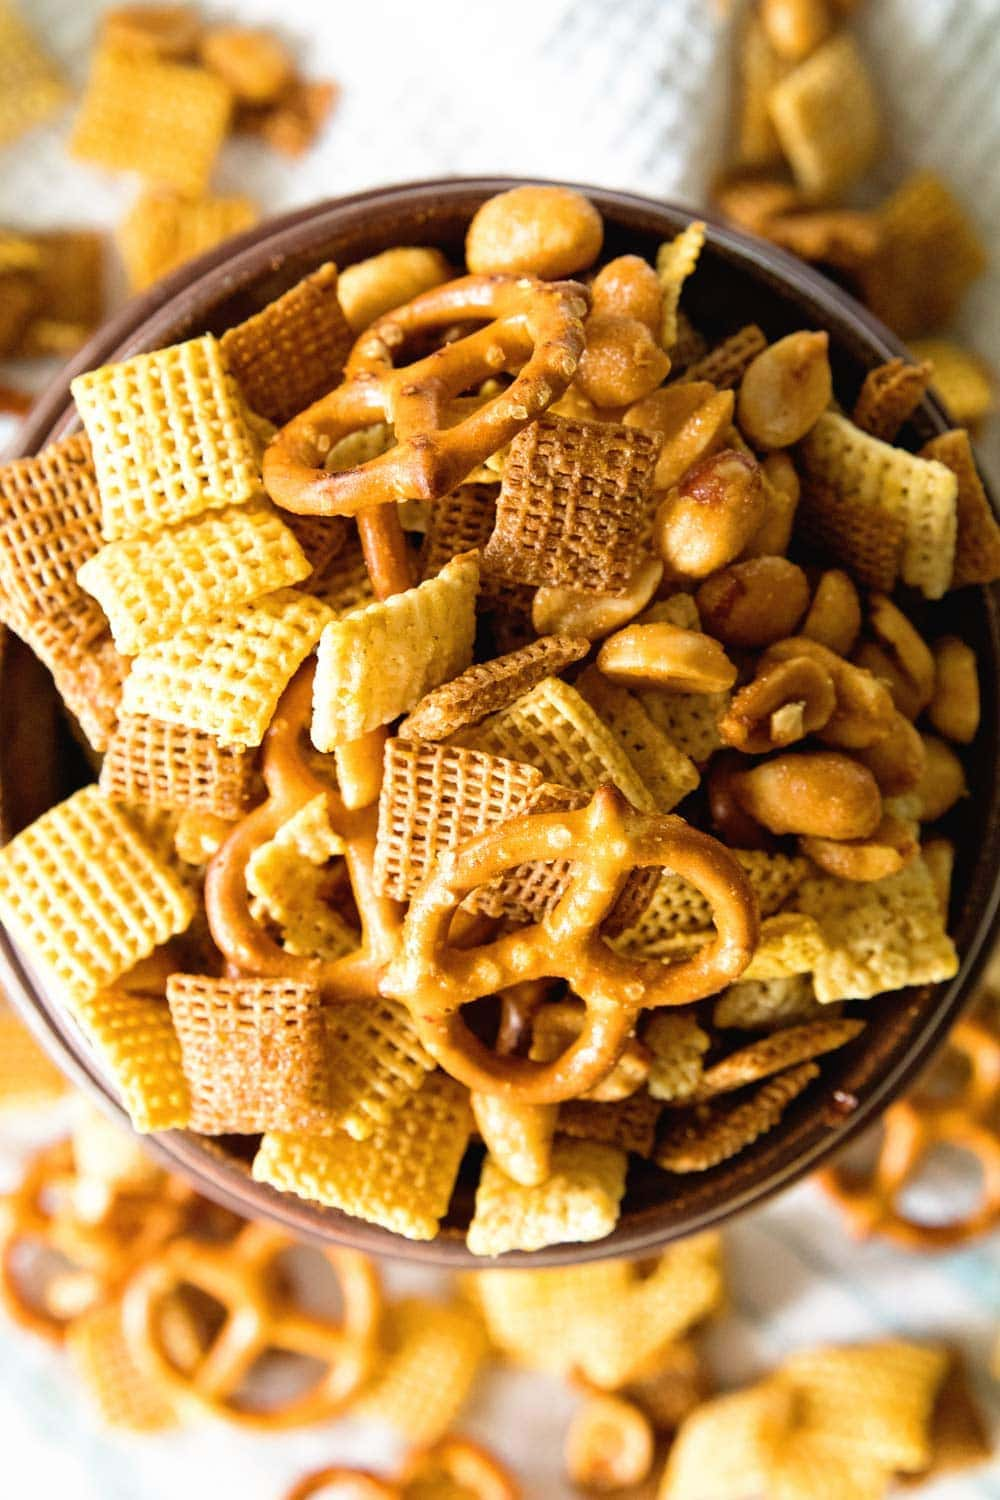 Honey Mustard Snack Mix is one of the best Snack Mix Recipes You Can Make!